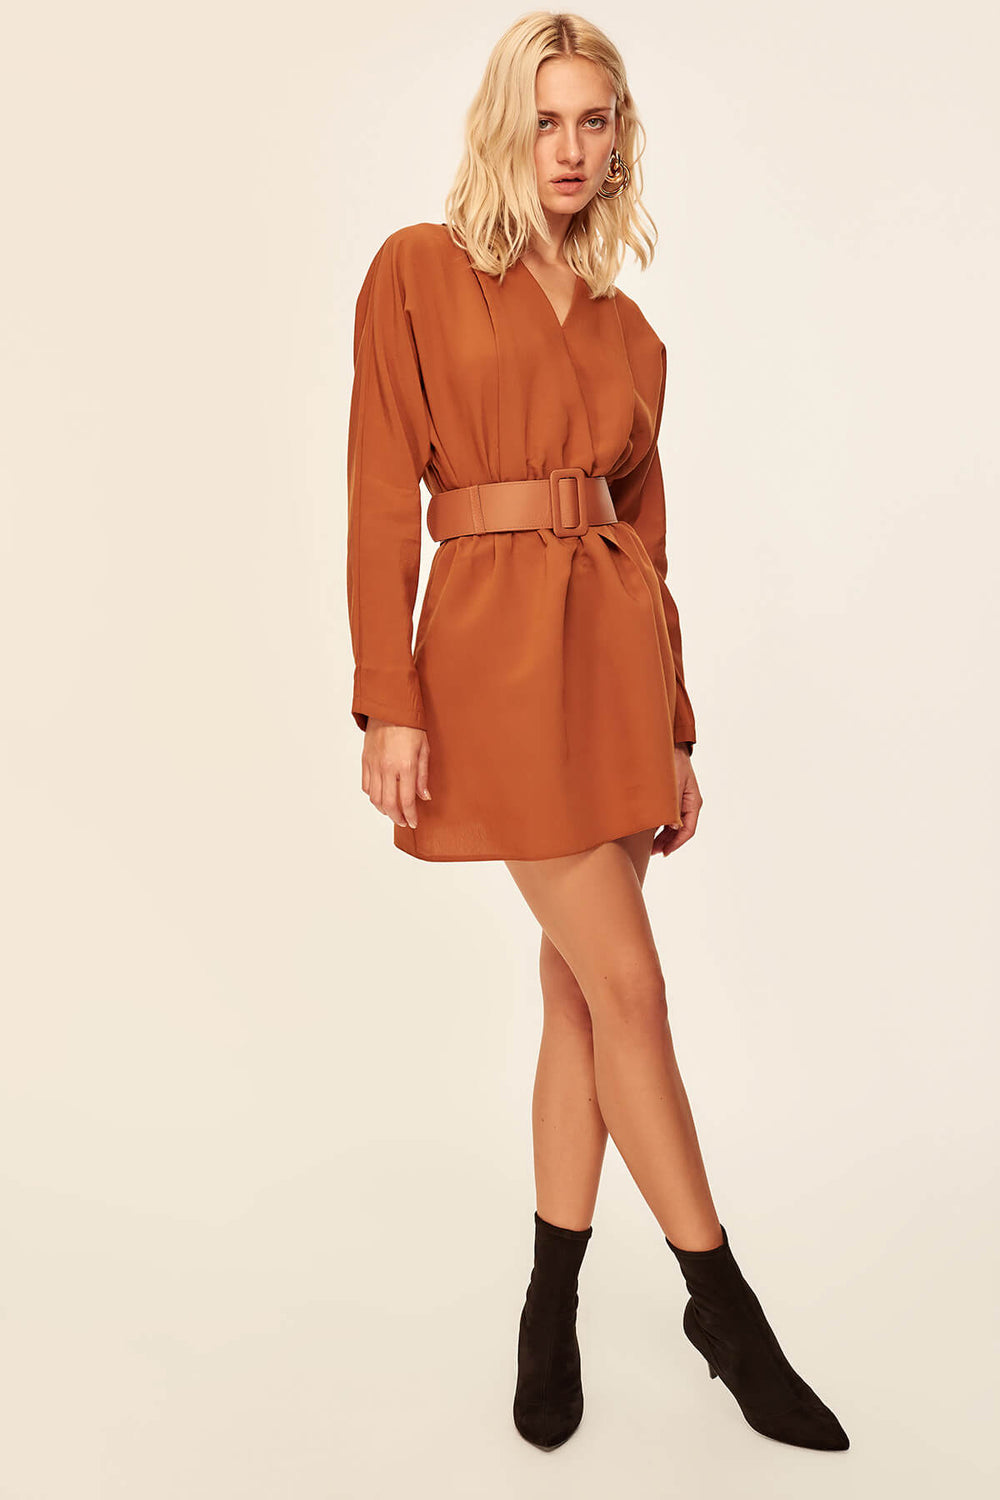 Arched Cinnamon Dress - Top Maxy